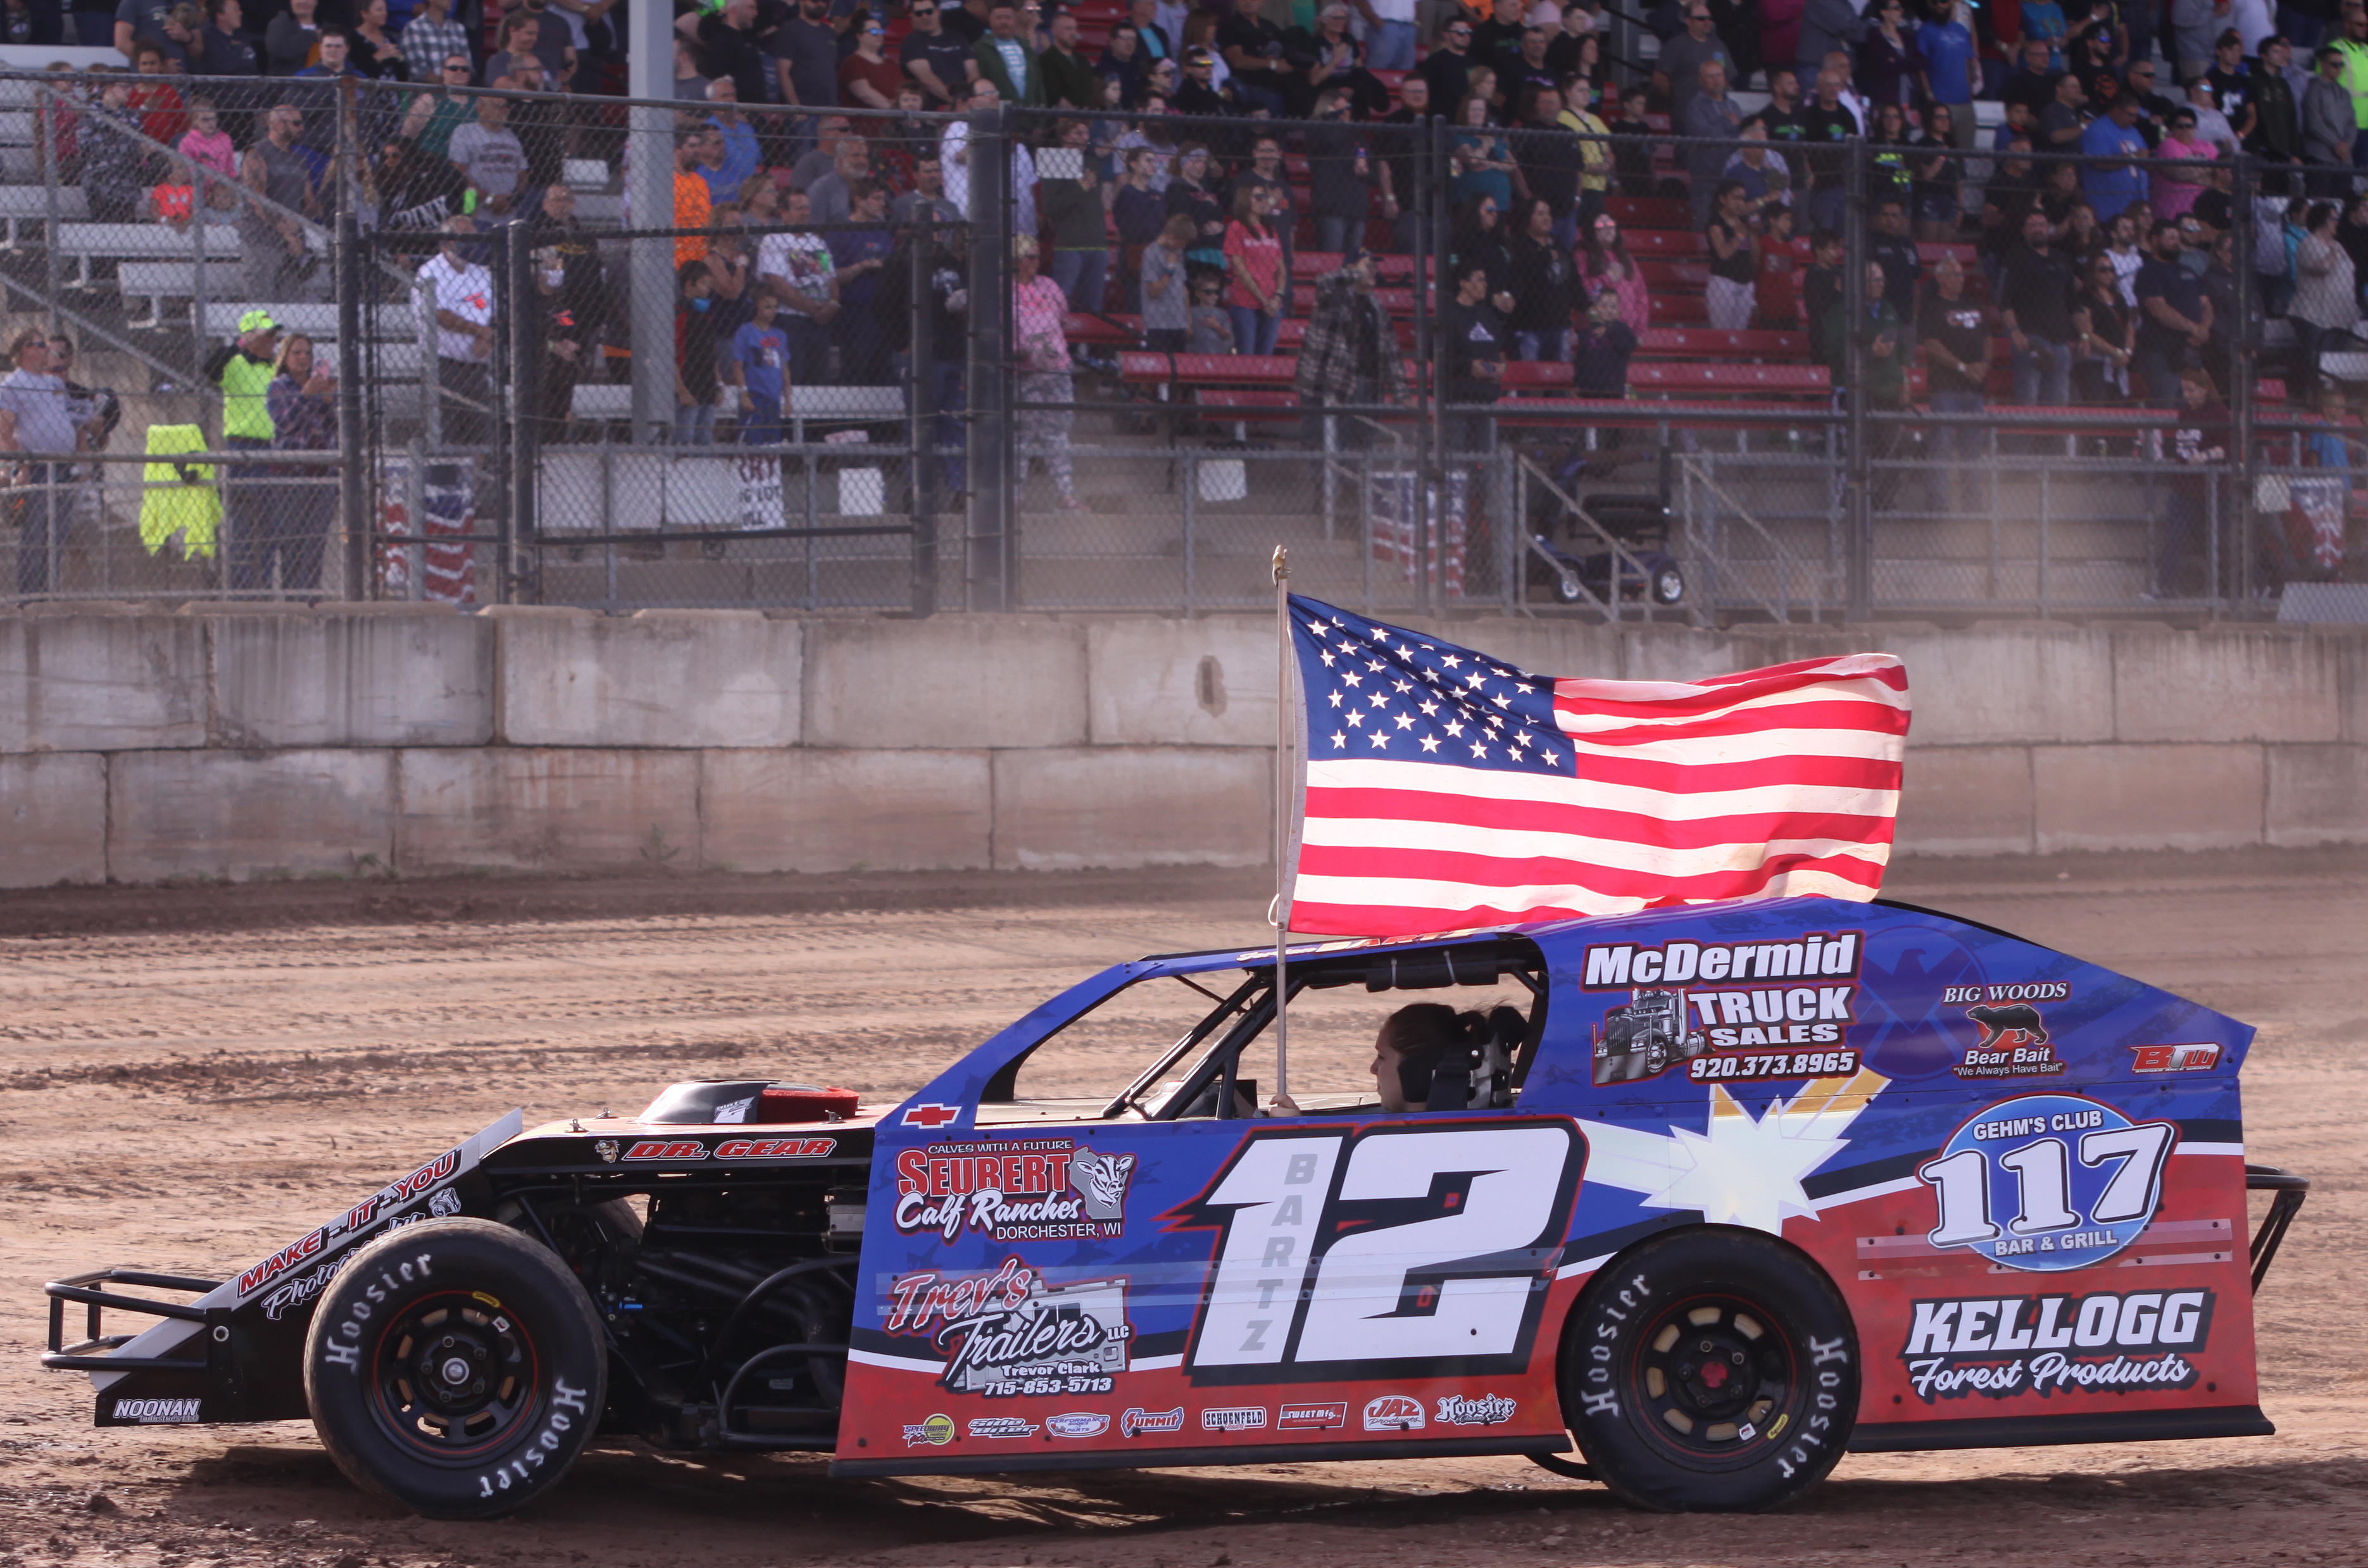 Jordan Bartz carries the U.S. flag as she drives around the track during the Shawano Speedway&#039;s season opener on Saturday. Drivers who won a 2019 title received the honor, with Bartz having won the IMCA Sport Mod class last summer.<br />Morgan Rode | NEW Media